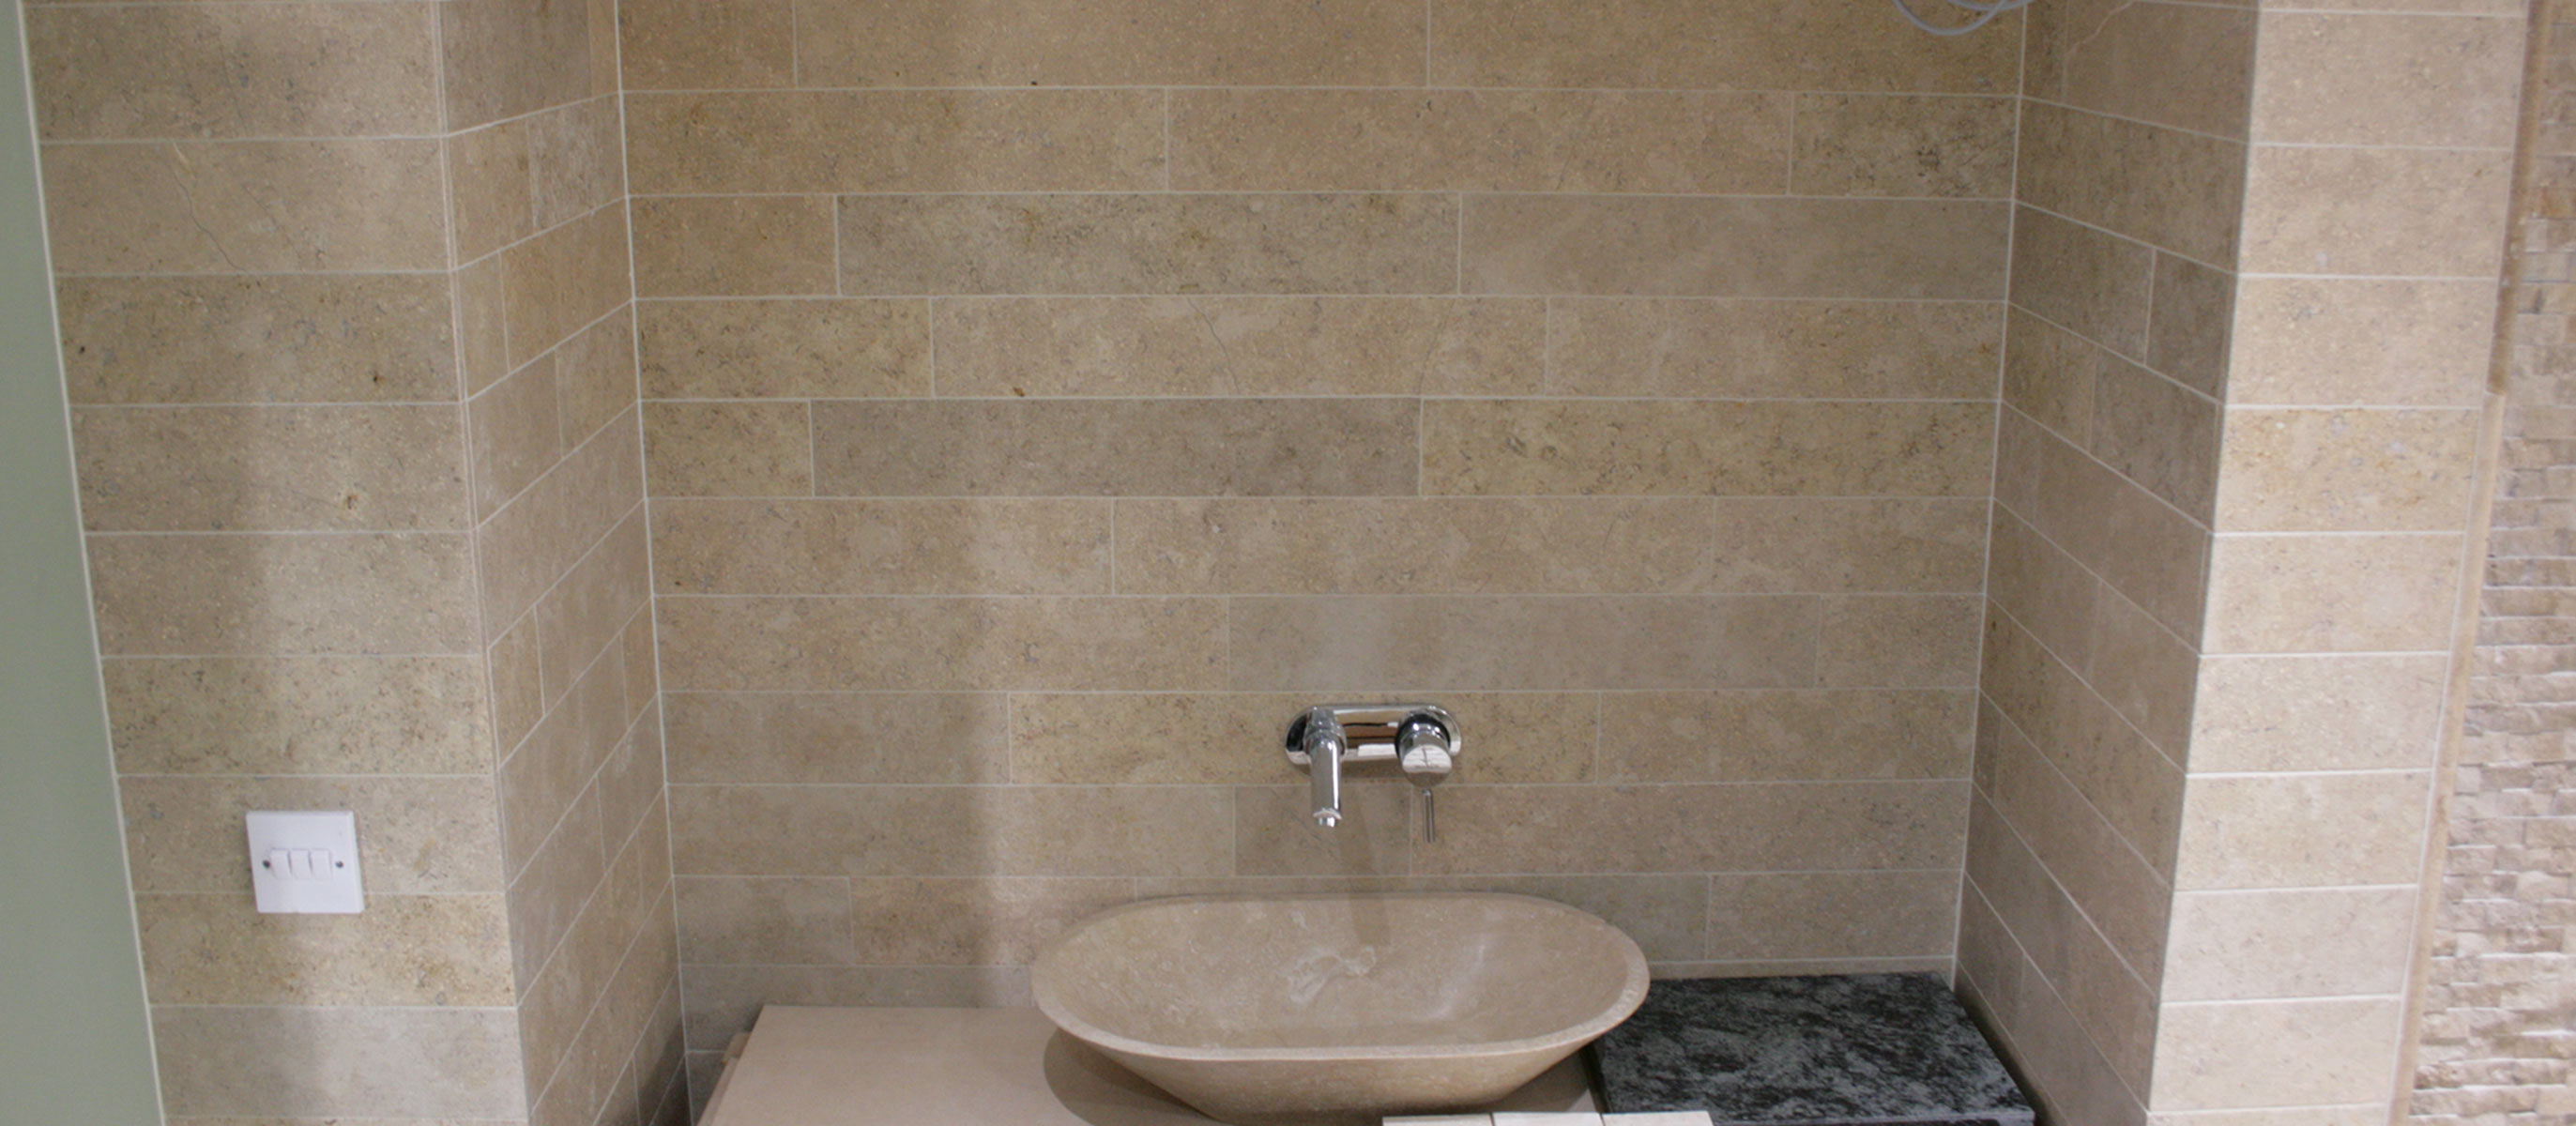 Charming 6x6 Ceramic Bathroom Tile